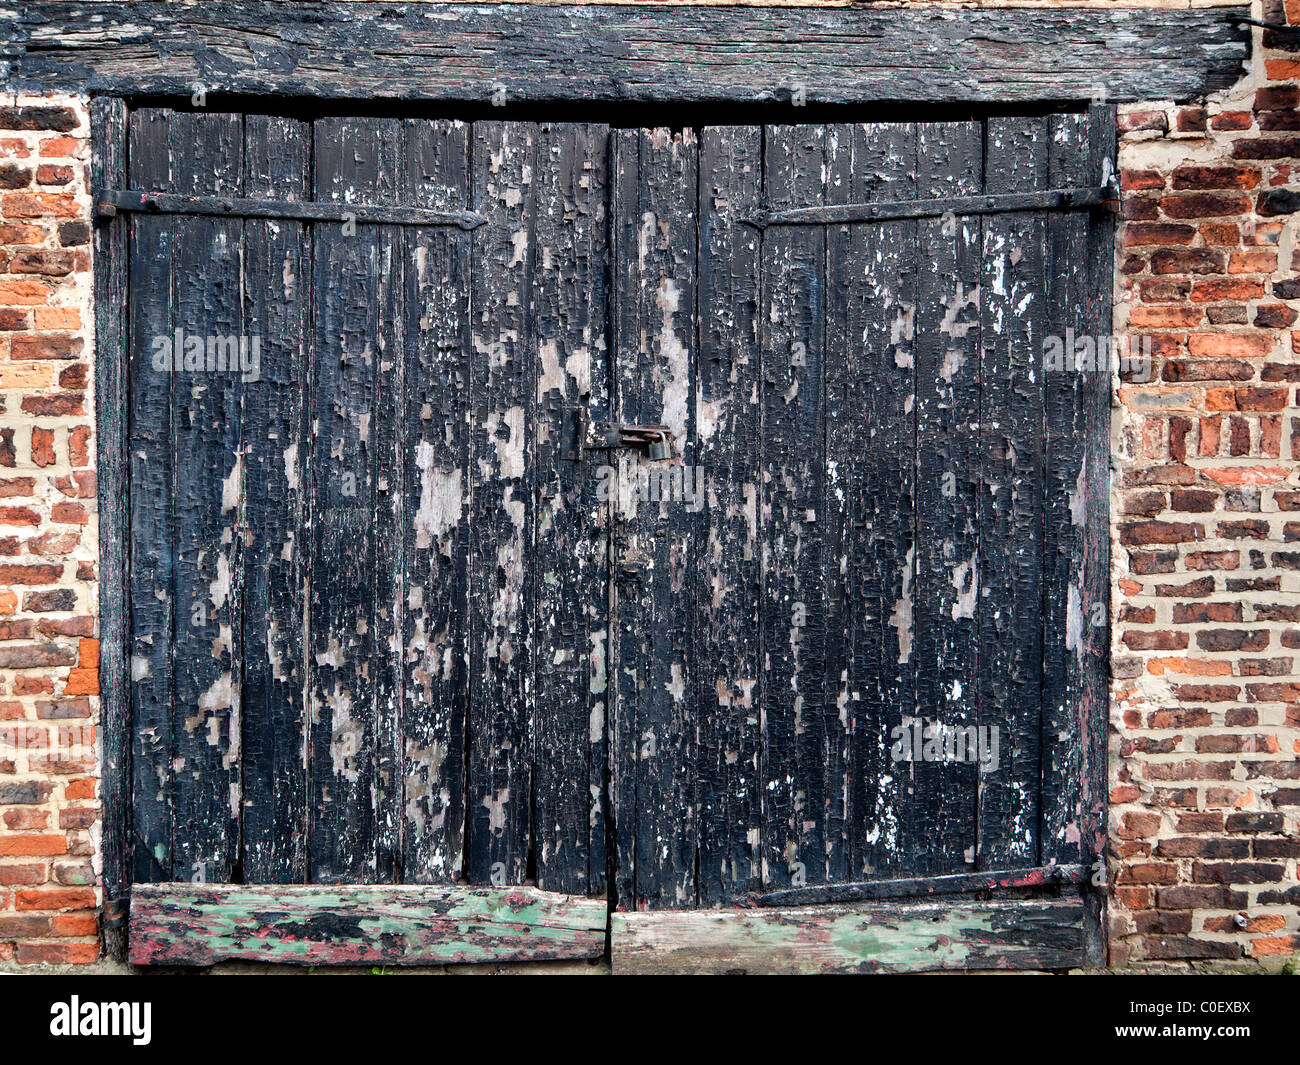 Old wooden garage door in need of redecoration with black paint